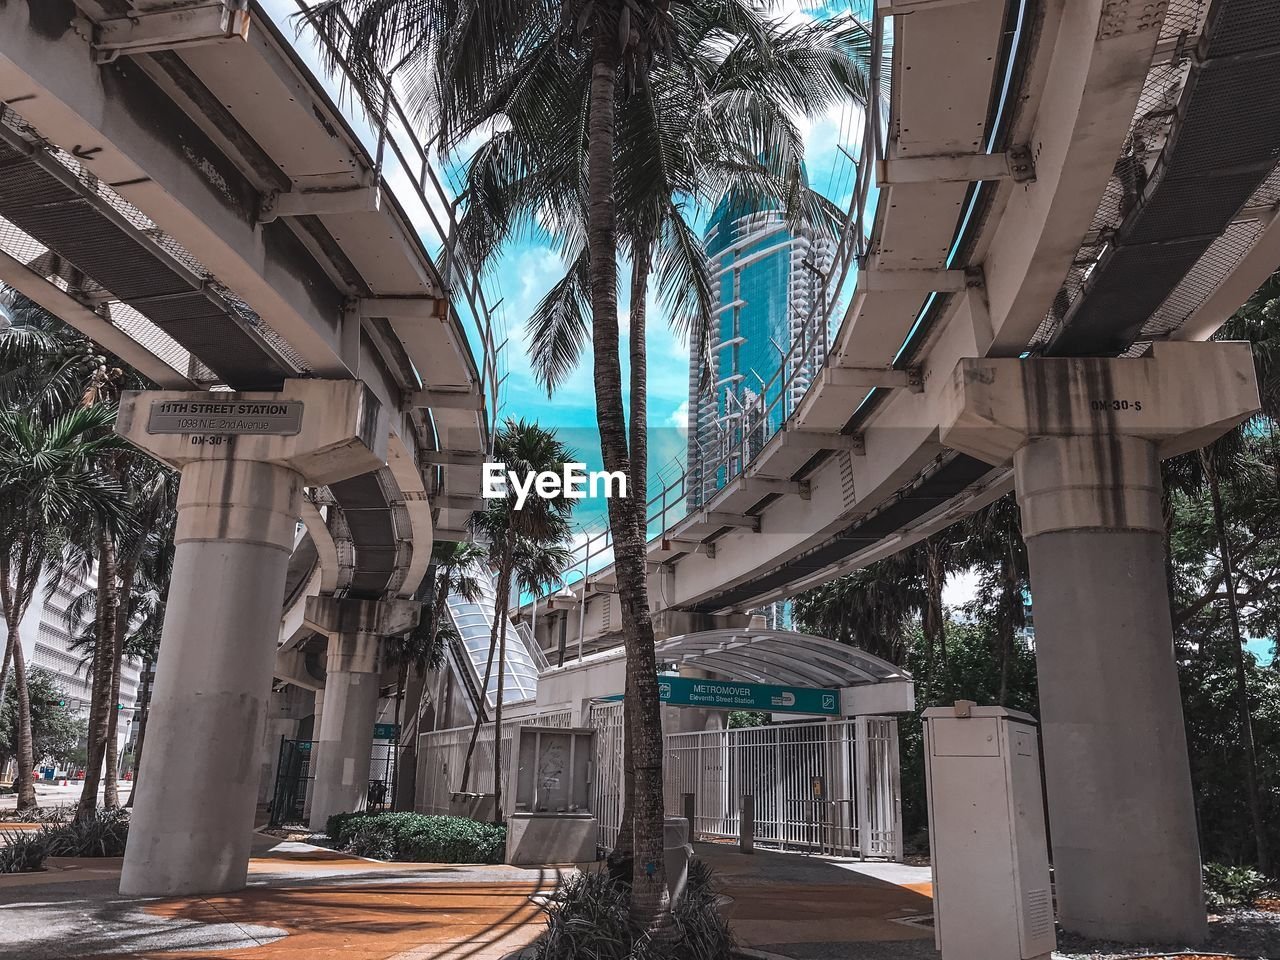 Low angle view of palm trees and buildings in city